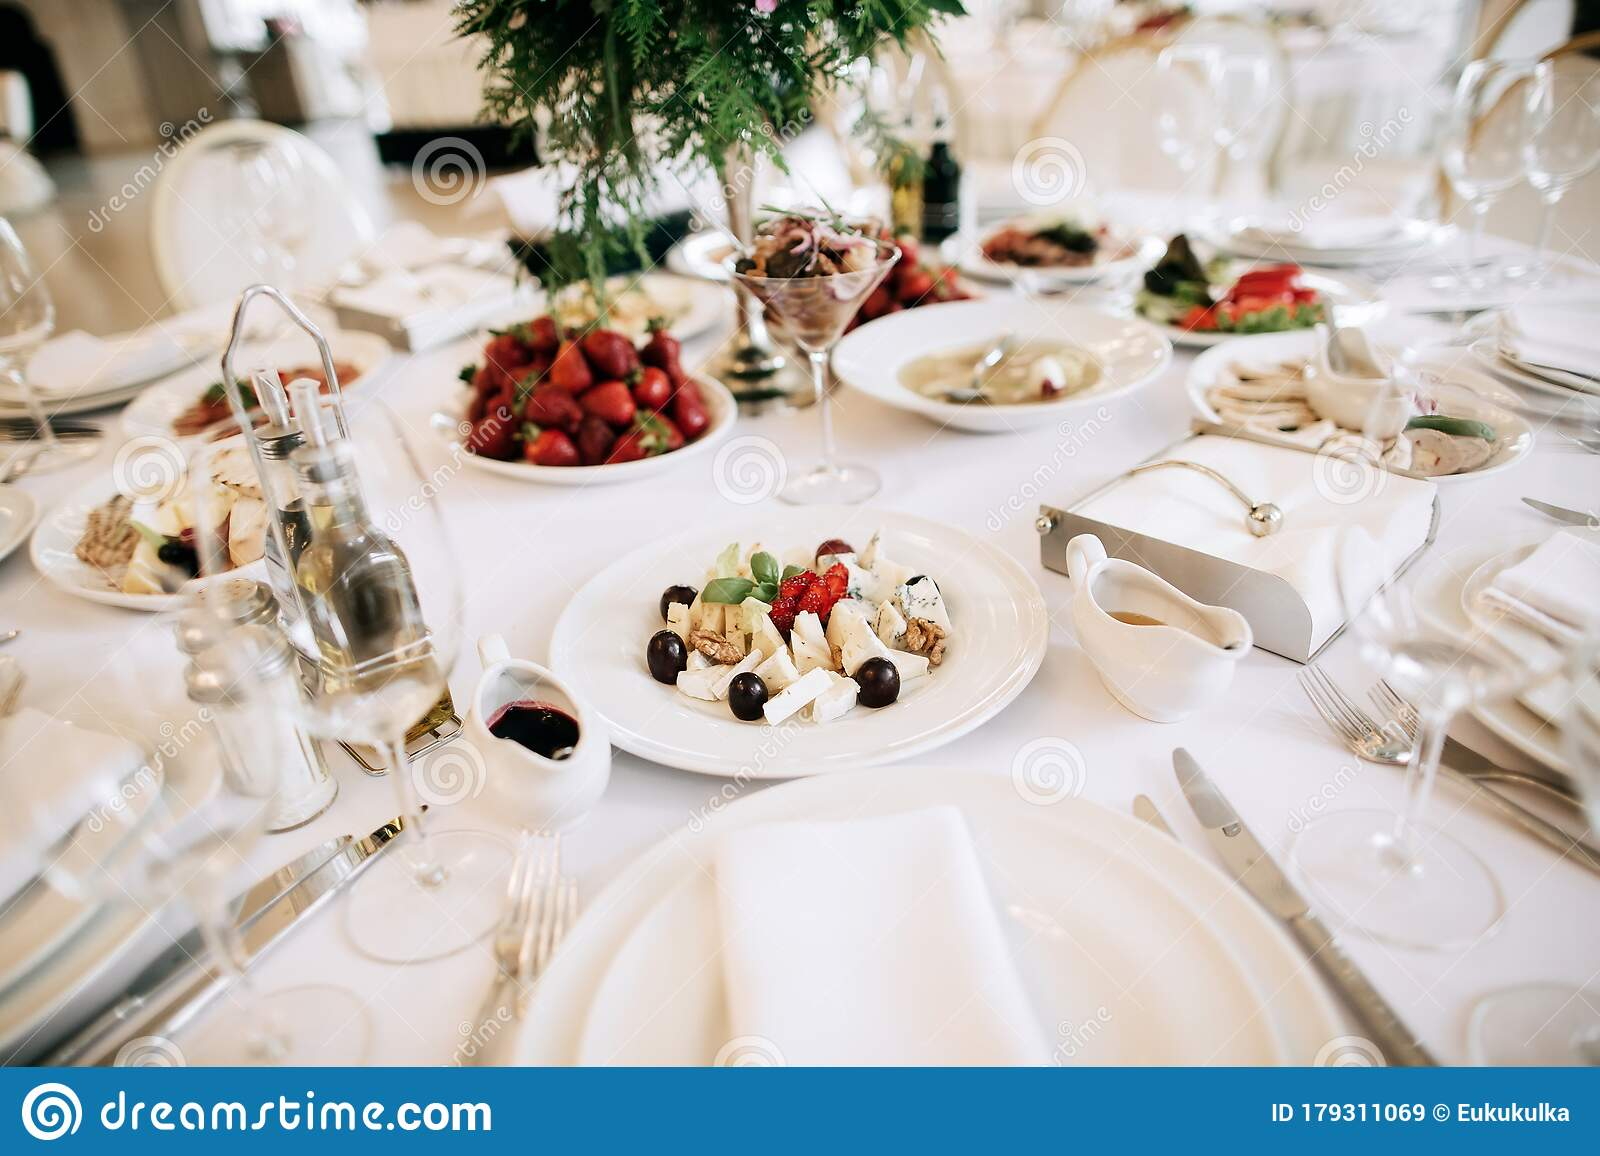 Restaurant Table With Food Catering Service Wedding Celebration Decoration Dinner Time Lunch Stock Image Image Of Cafeteria Festive 179311069